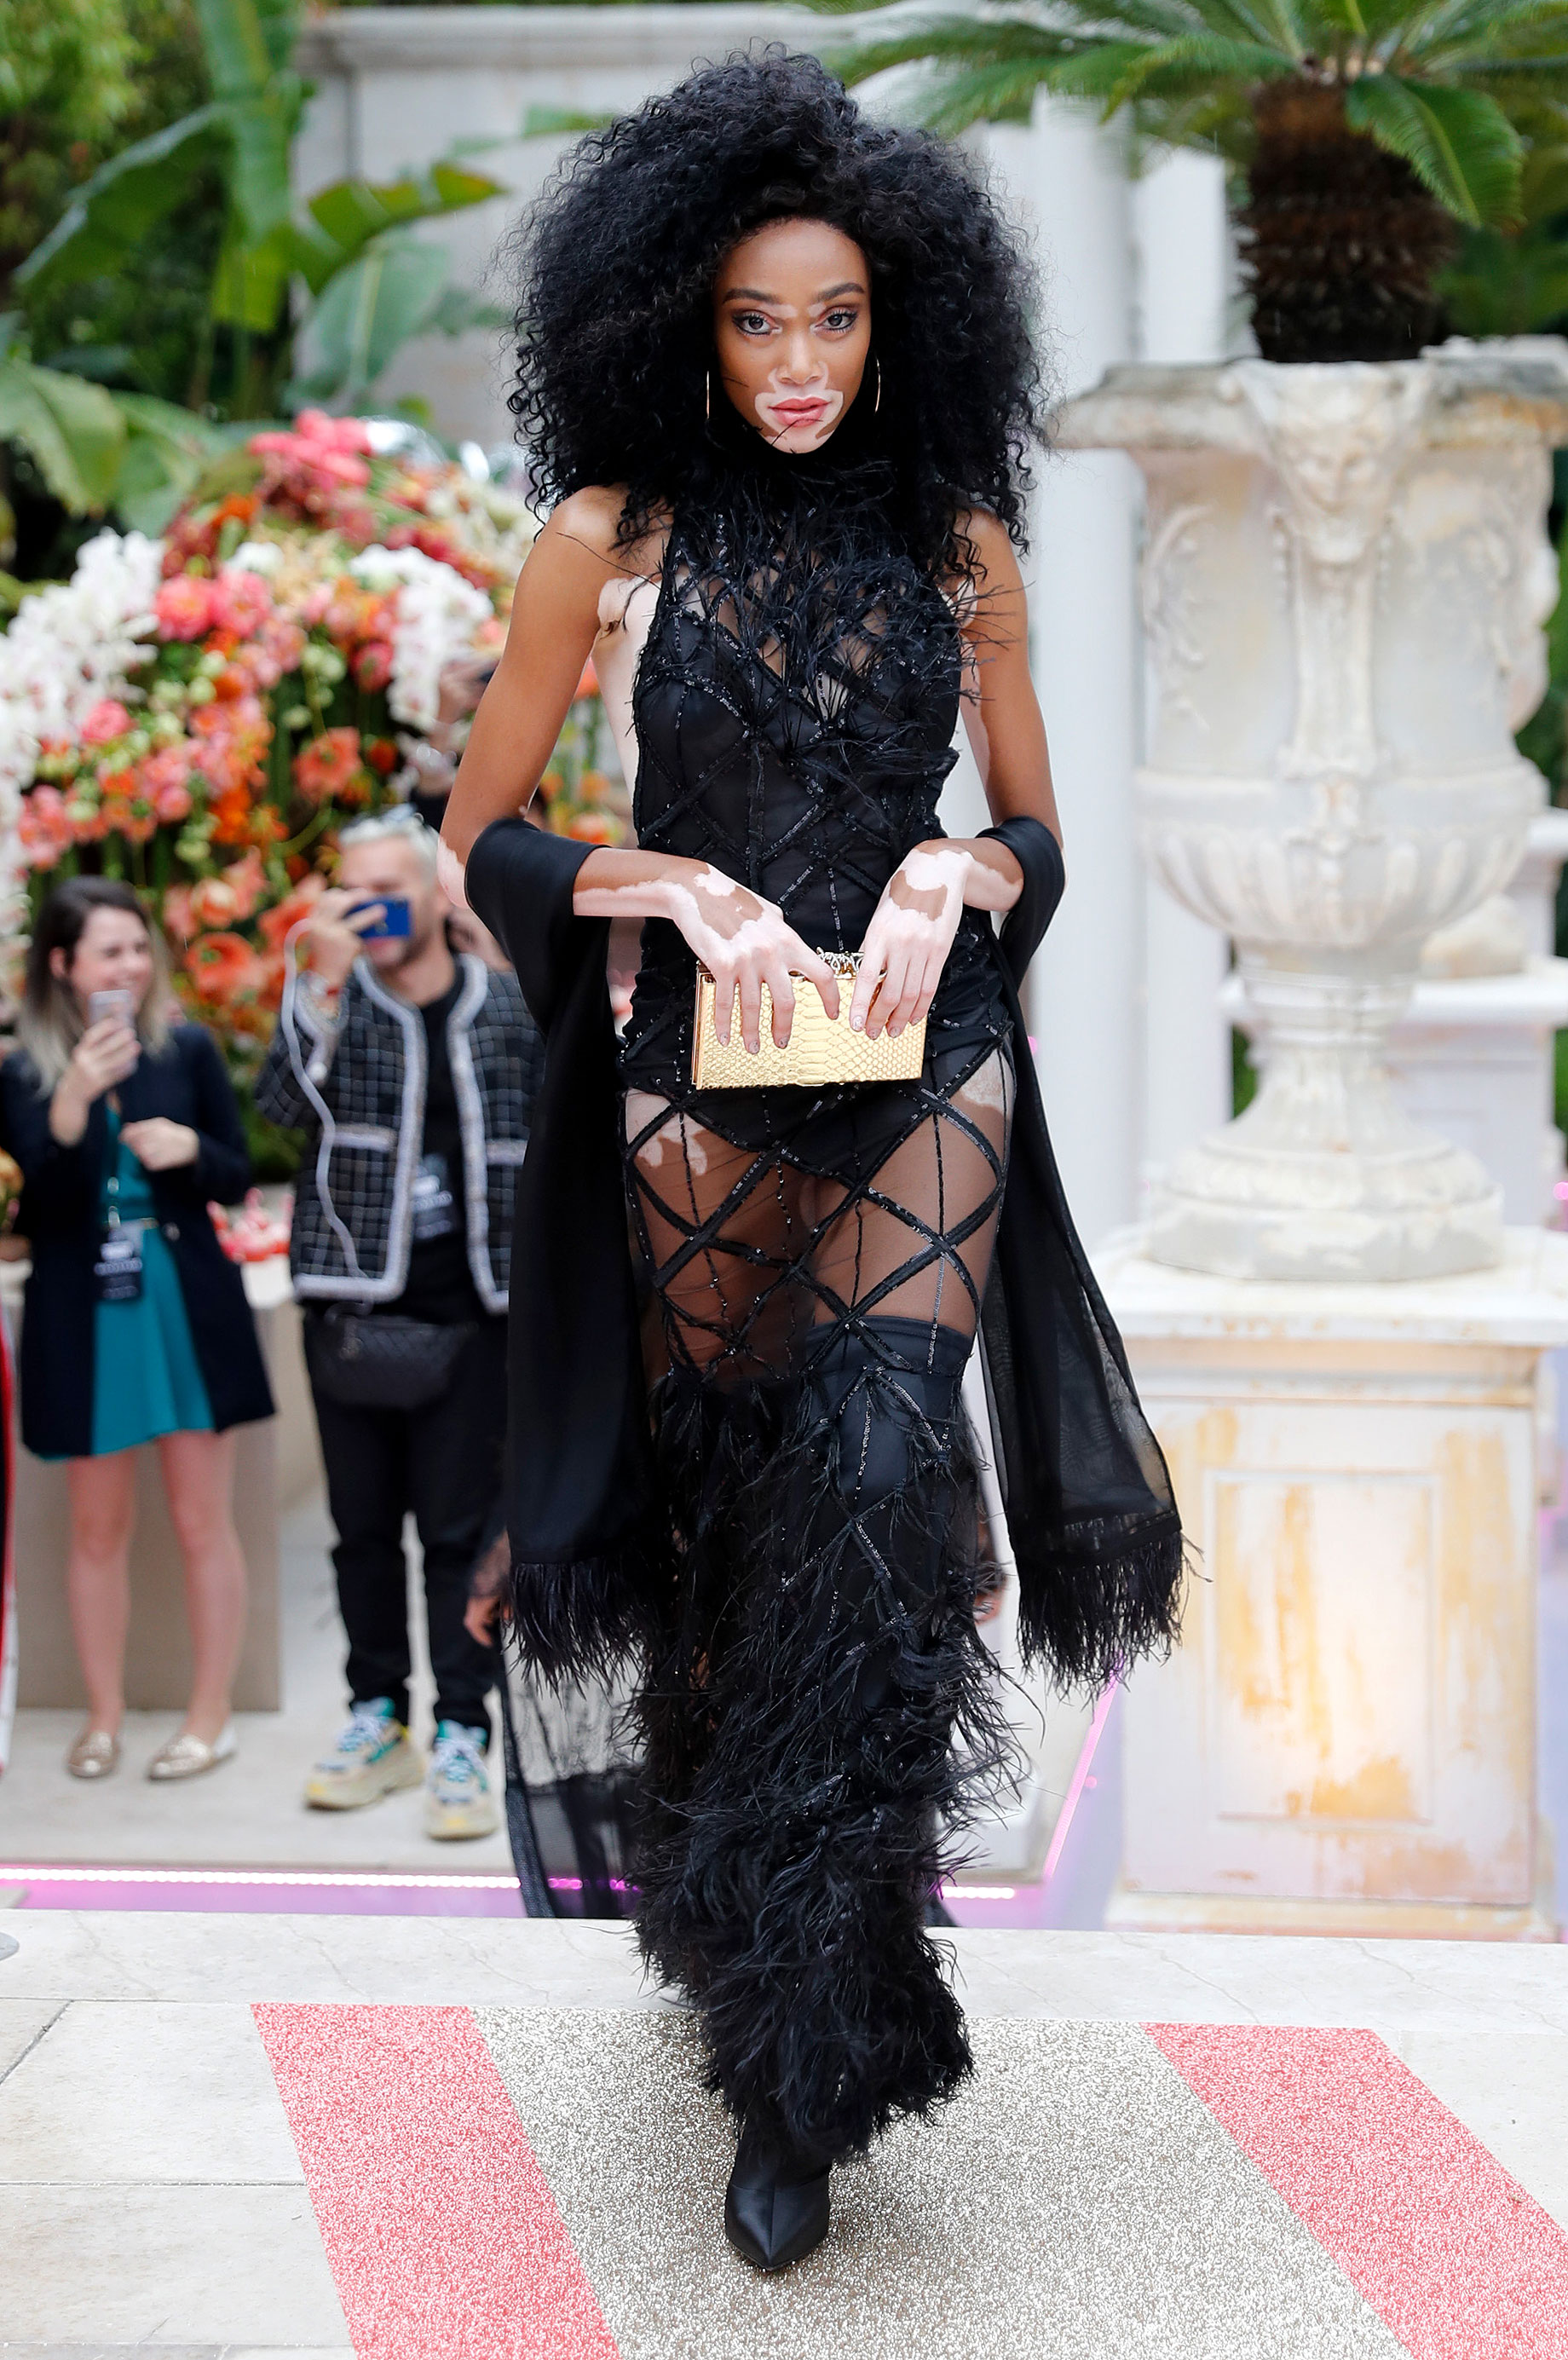 Winnie Harlow - The model strutted her stuff on the Philipp Plein catwalk on Wednesday, May 16 in a black lattice bodysuit and fringe thigh-high boots.